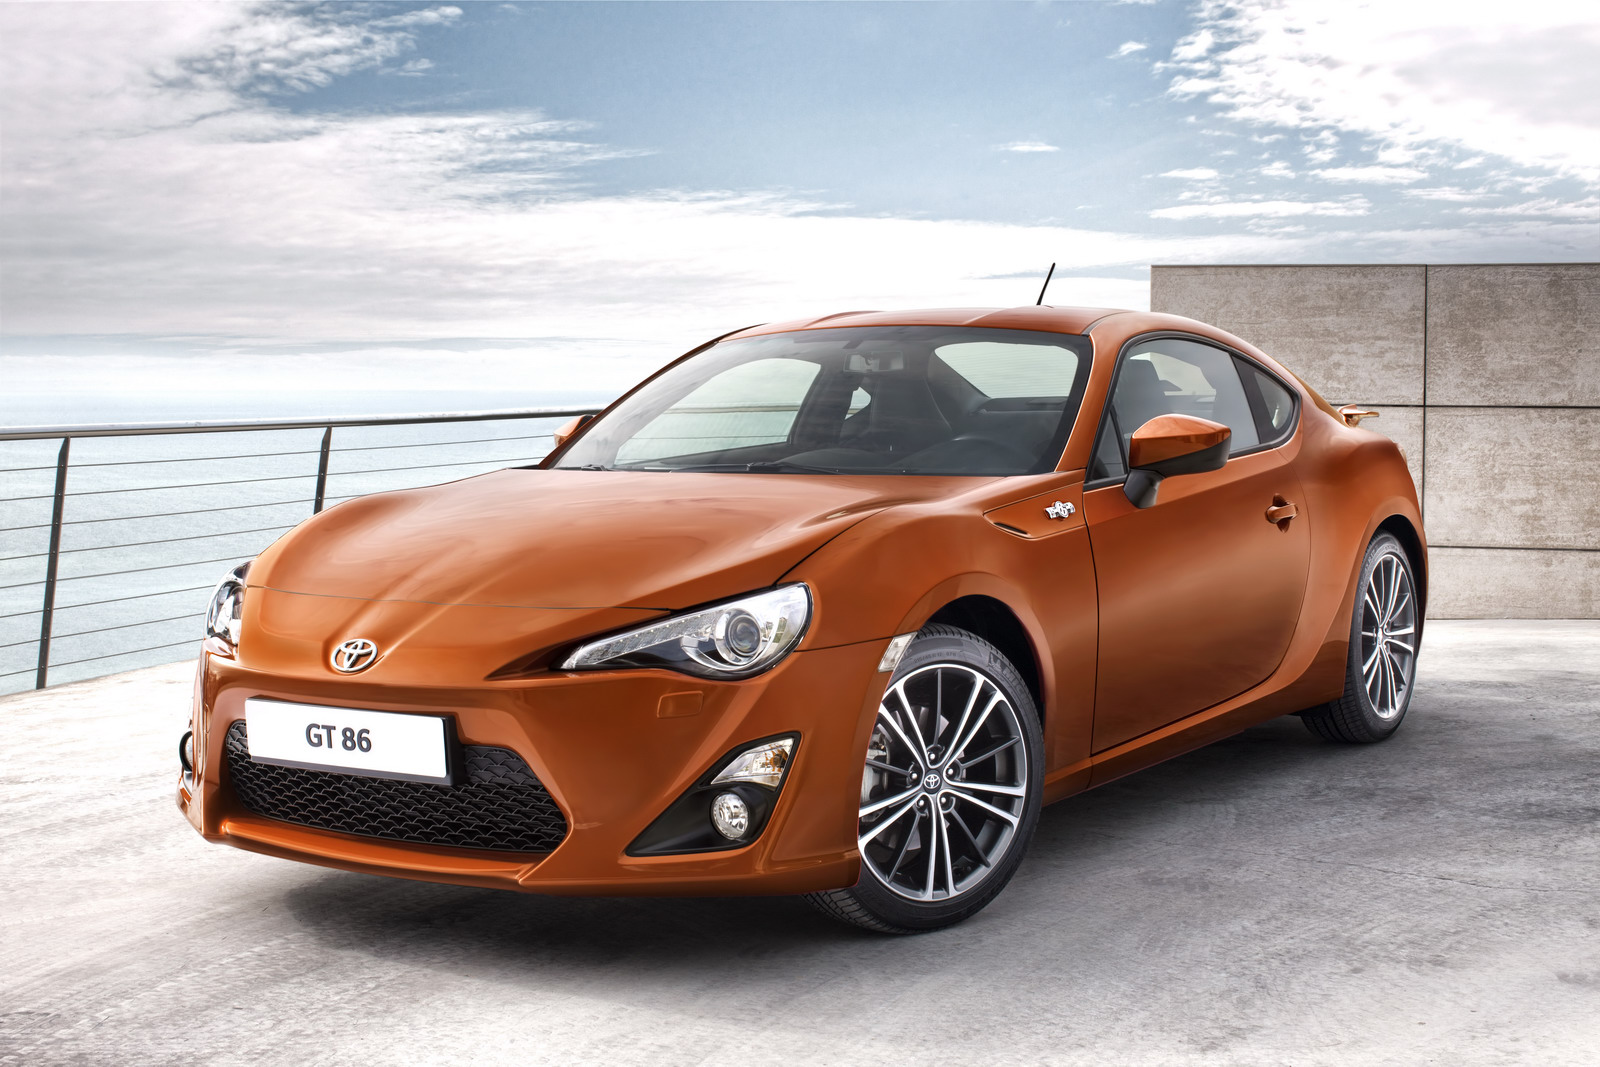 Toyota Ft 86 >> New Toyota GT 86 Coupé – The Real FT 86 - ForceGT.com